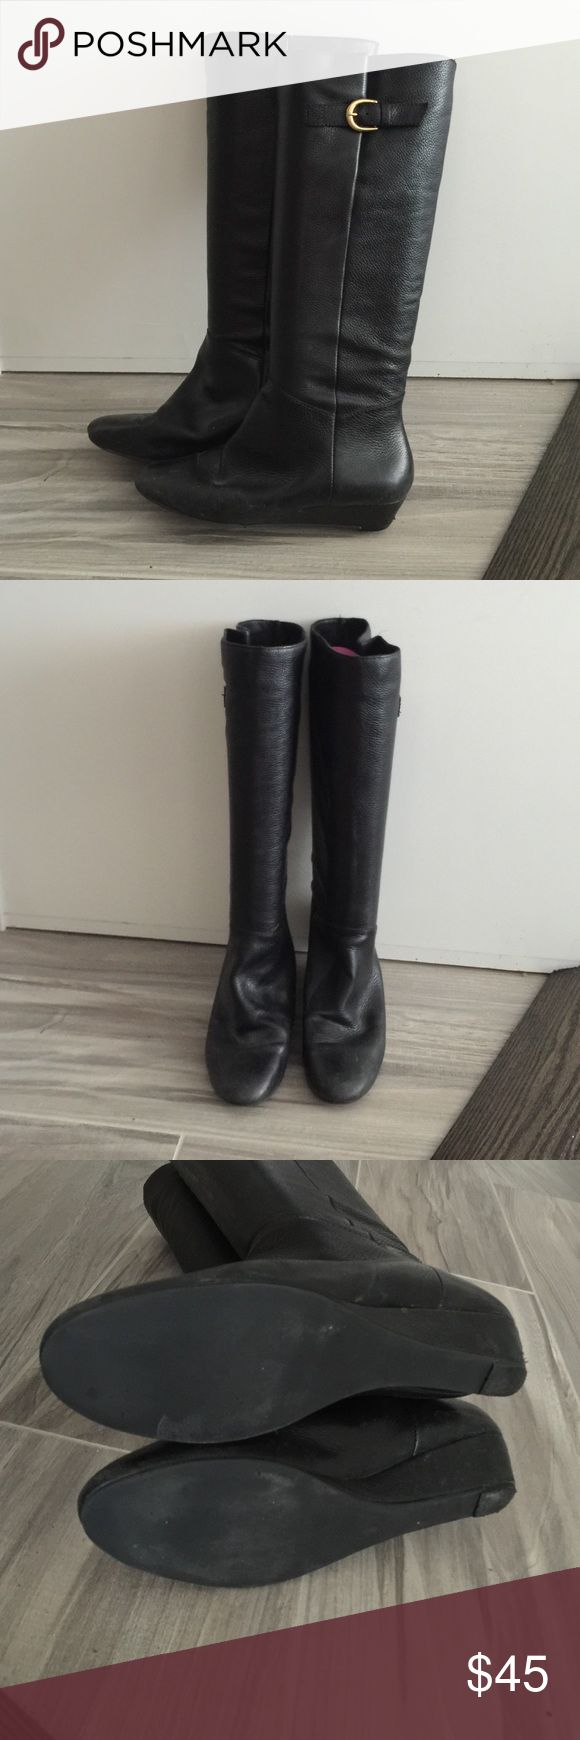 Steve Madden Intyce 7.5 Black Leather Boots Steve Madden Intyce 7.5 Black Leather Boots Steve Madden Shoes Heeled Boots